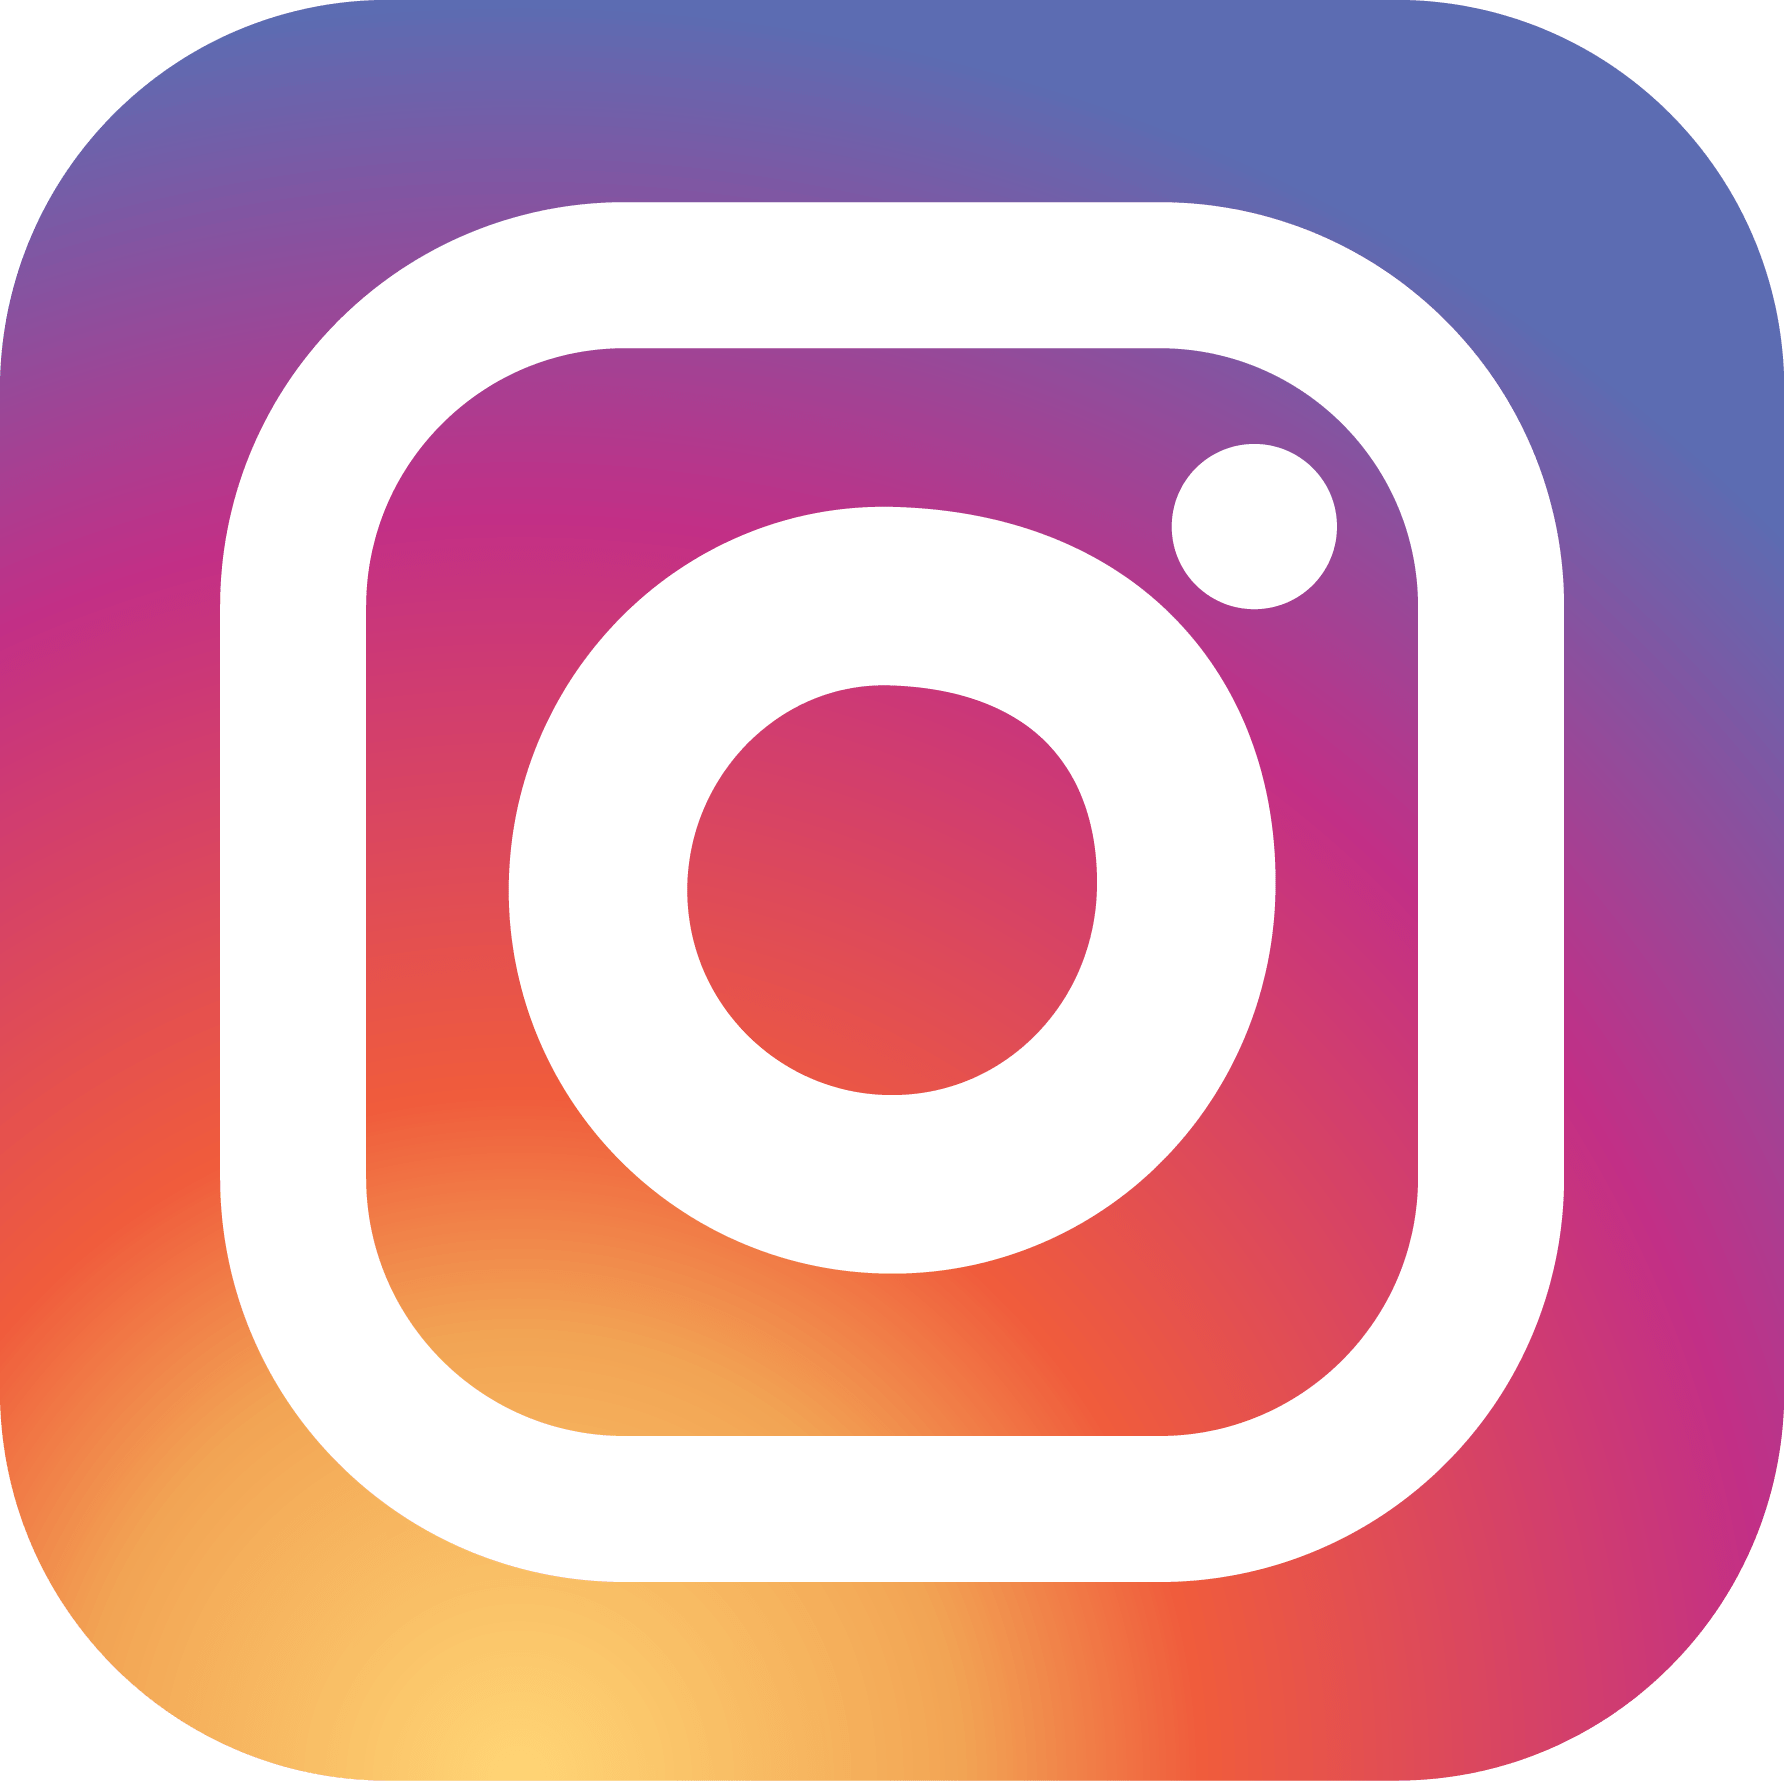 Instagram Logo [New] PNG Free Downloads, Logo Brand